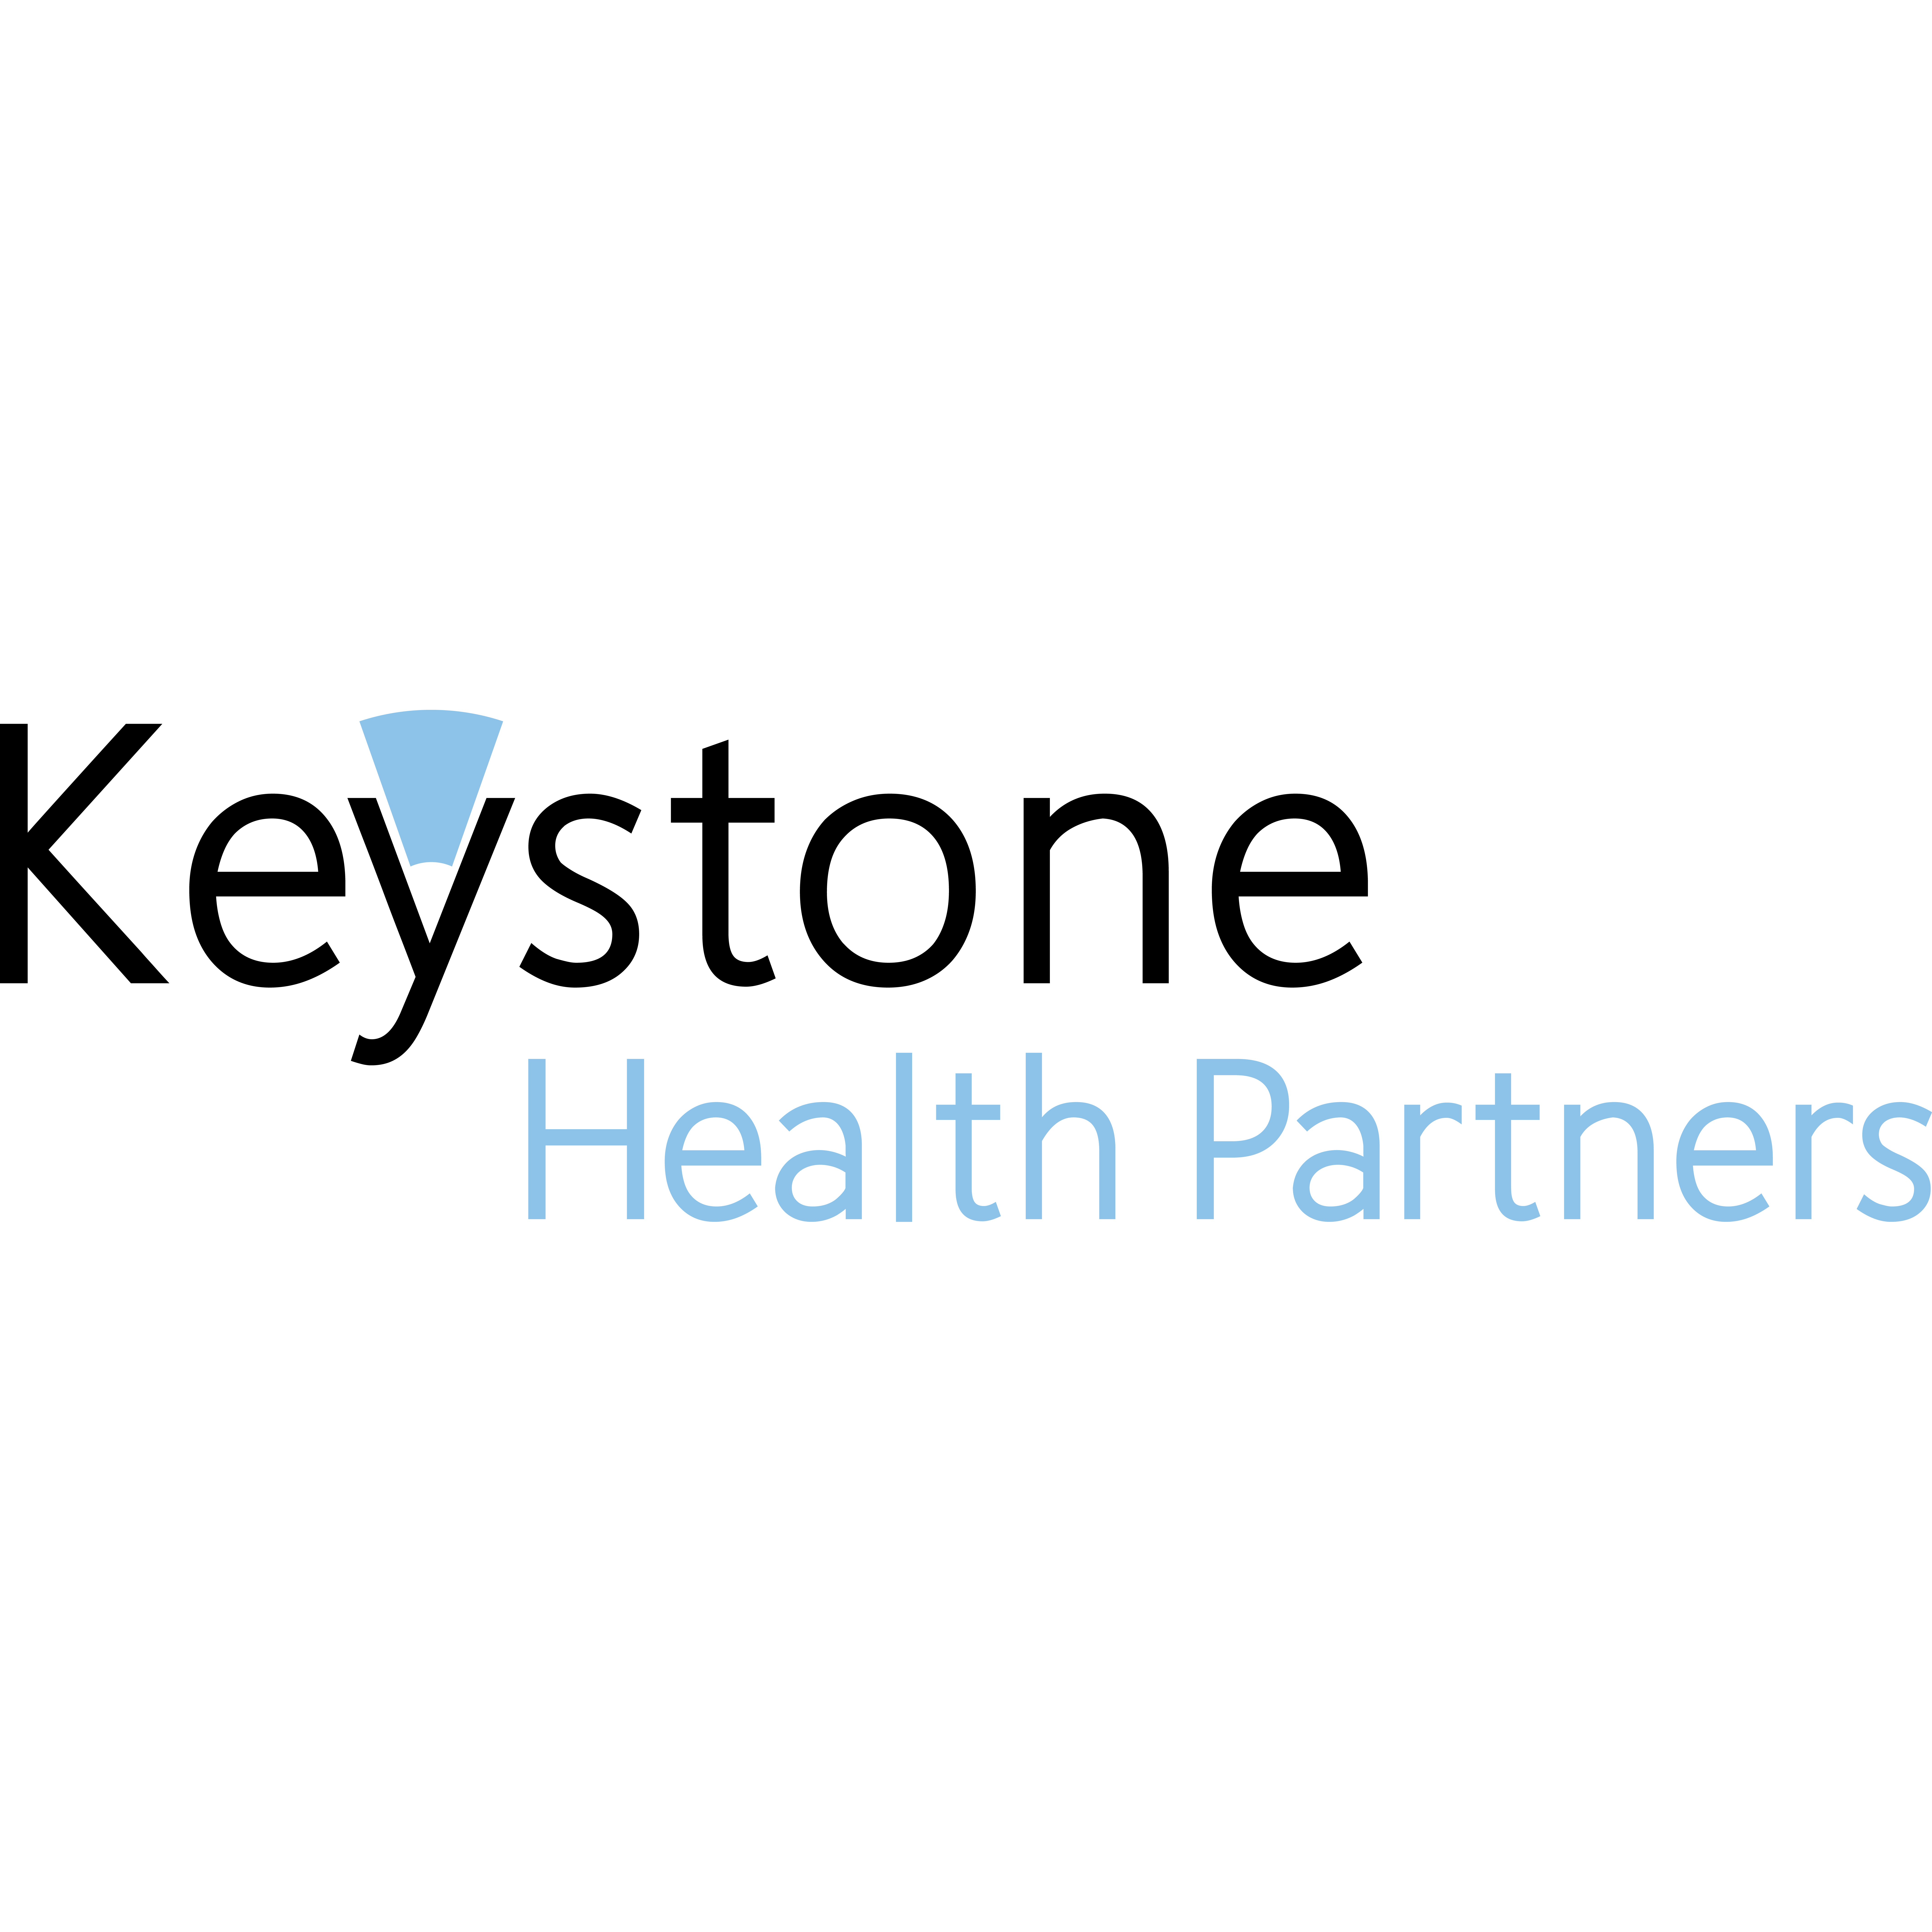 keystone health partners coupons near me in sarasota